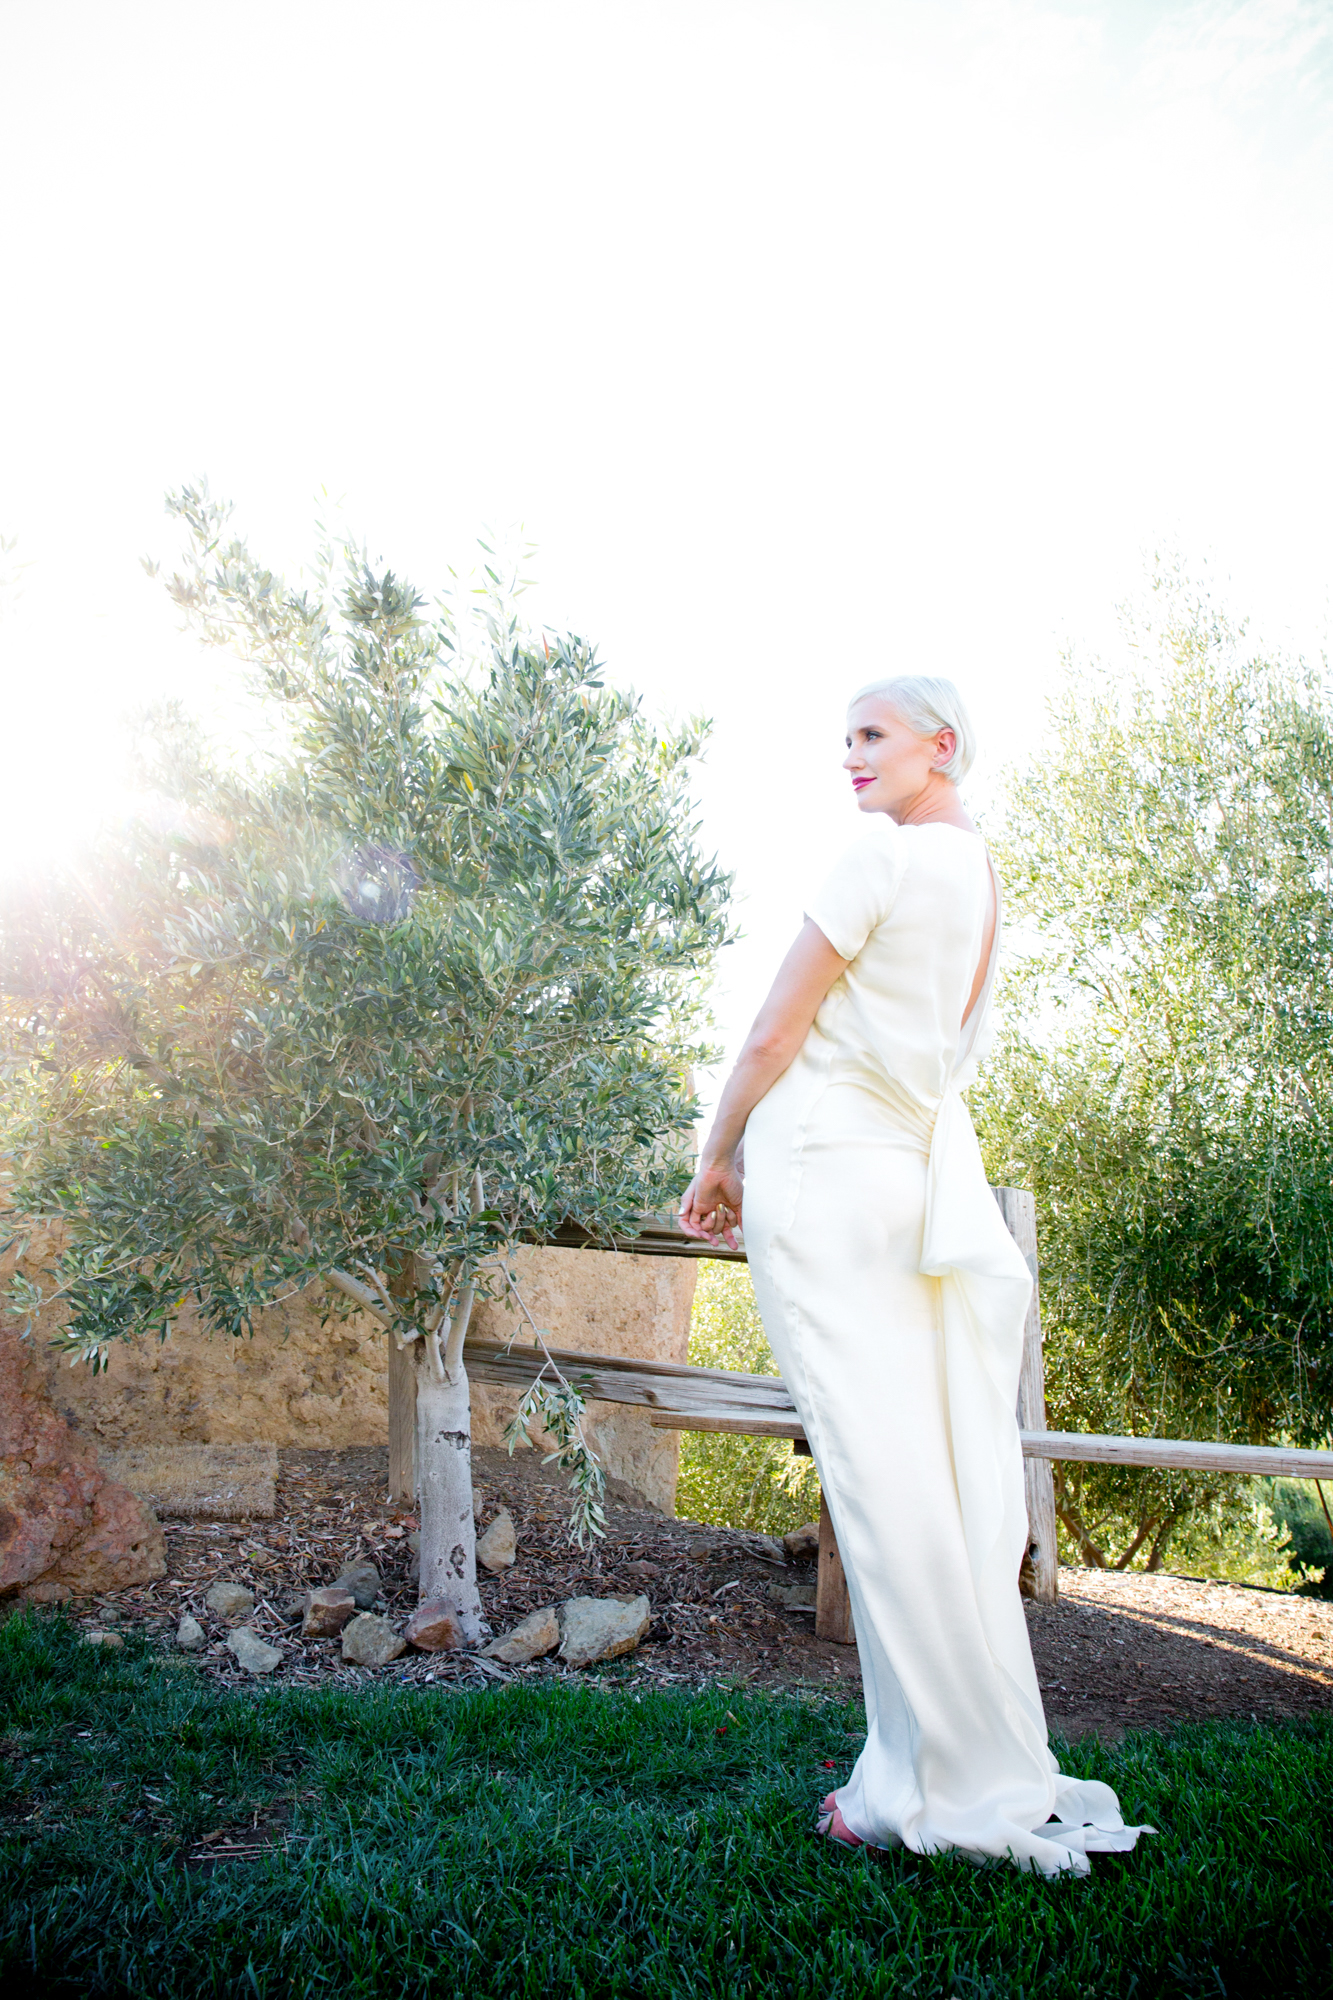 019_CarlyGaebe_SteadfastStudio_WeddingPhotography_Malibu_LosAngeles_LA_California_Winery_Hilltop_CieloFarms_Bride_LanvinDress_Vineyard.jpg